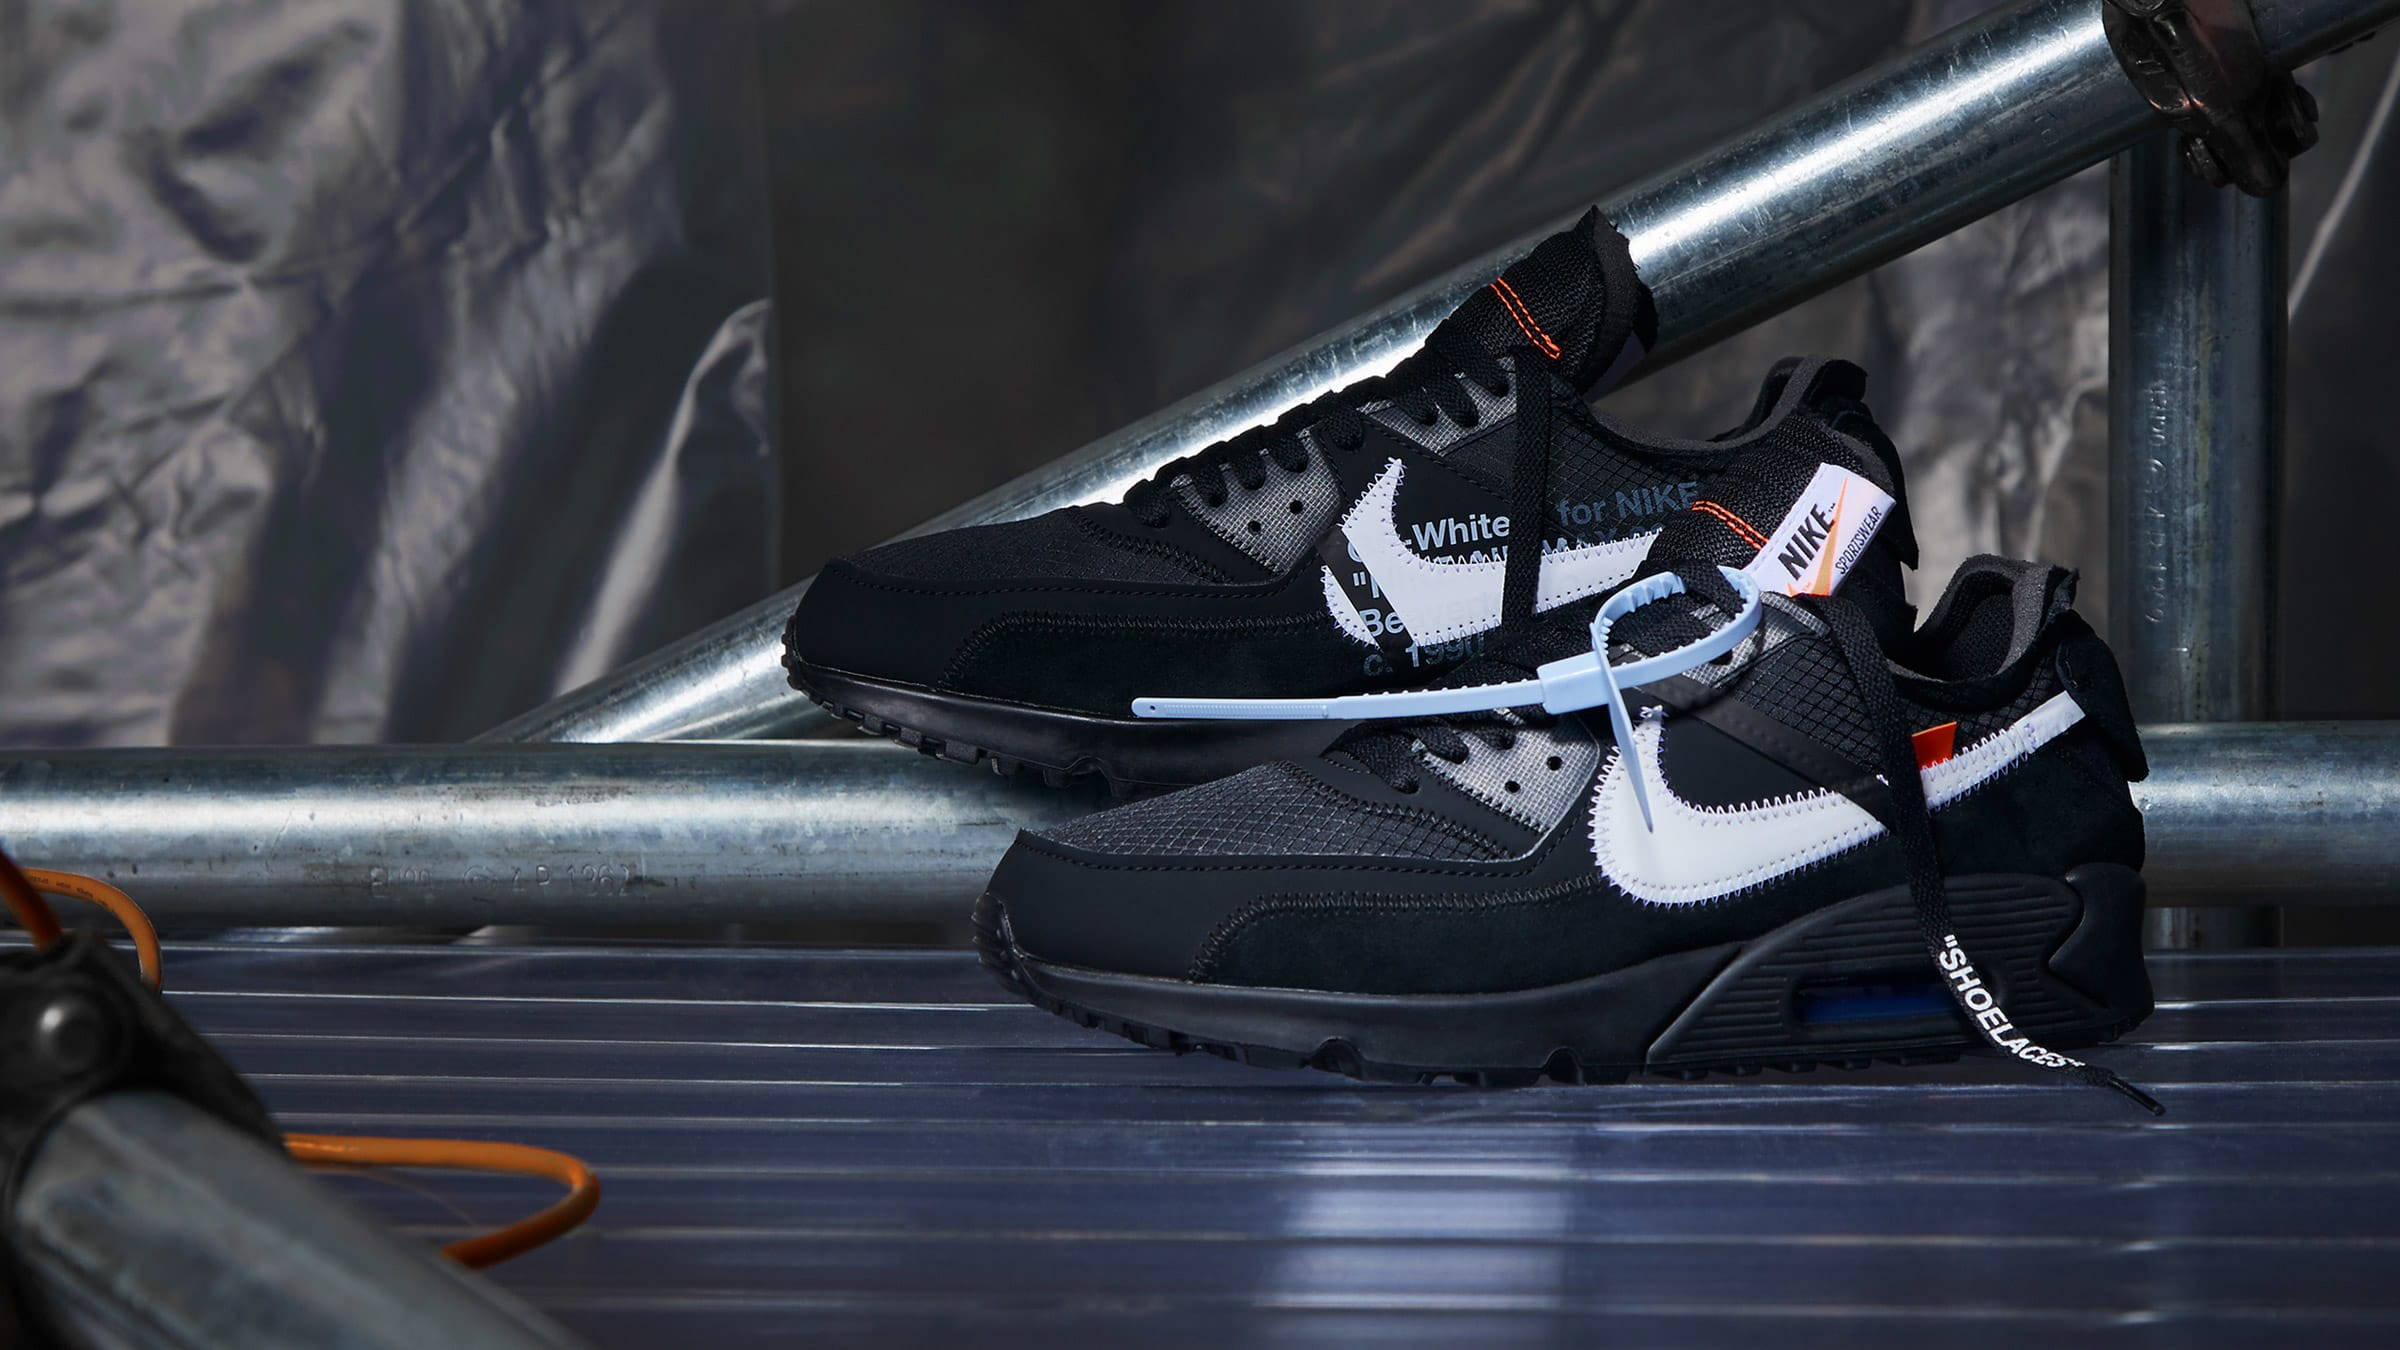 new style 12b09 703dc END. Features | The Ten Reissues: Nike x Virgil Abloh Air ...